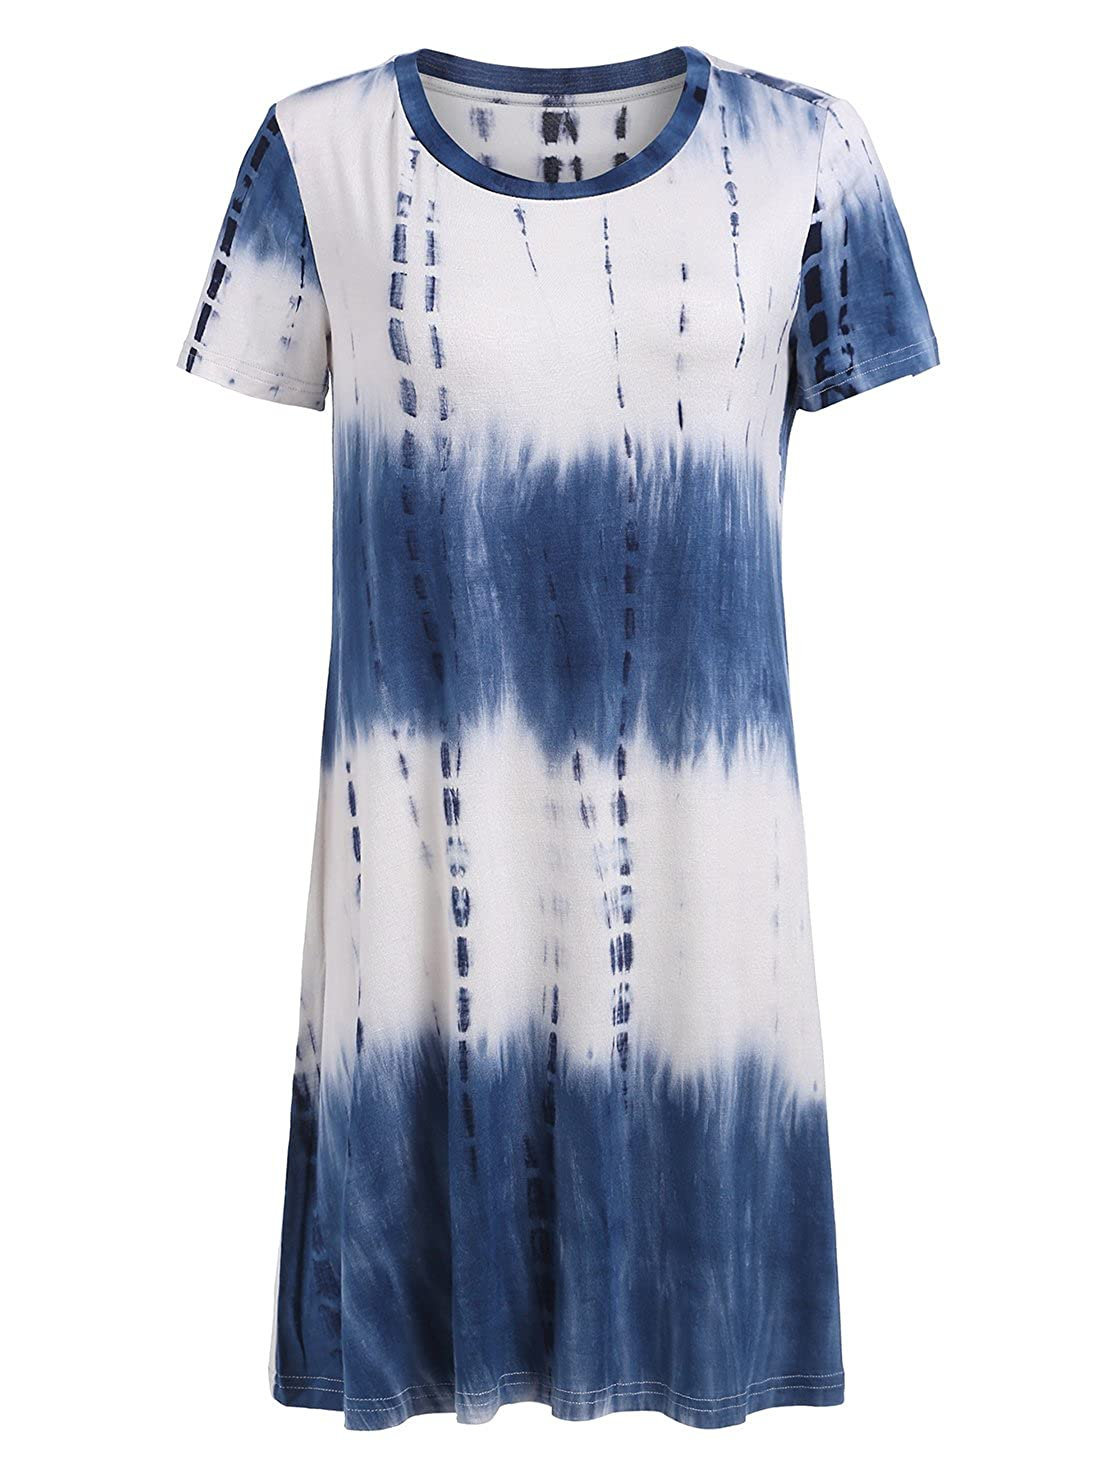 b8ed175d5b31 Romwe Loose Casual Short Sleeve Tie Dye Ombre Swing T-Shirt Tunic Dress at  Amazon Women s Clothing store